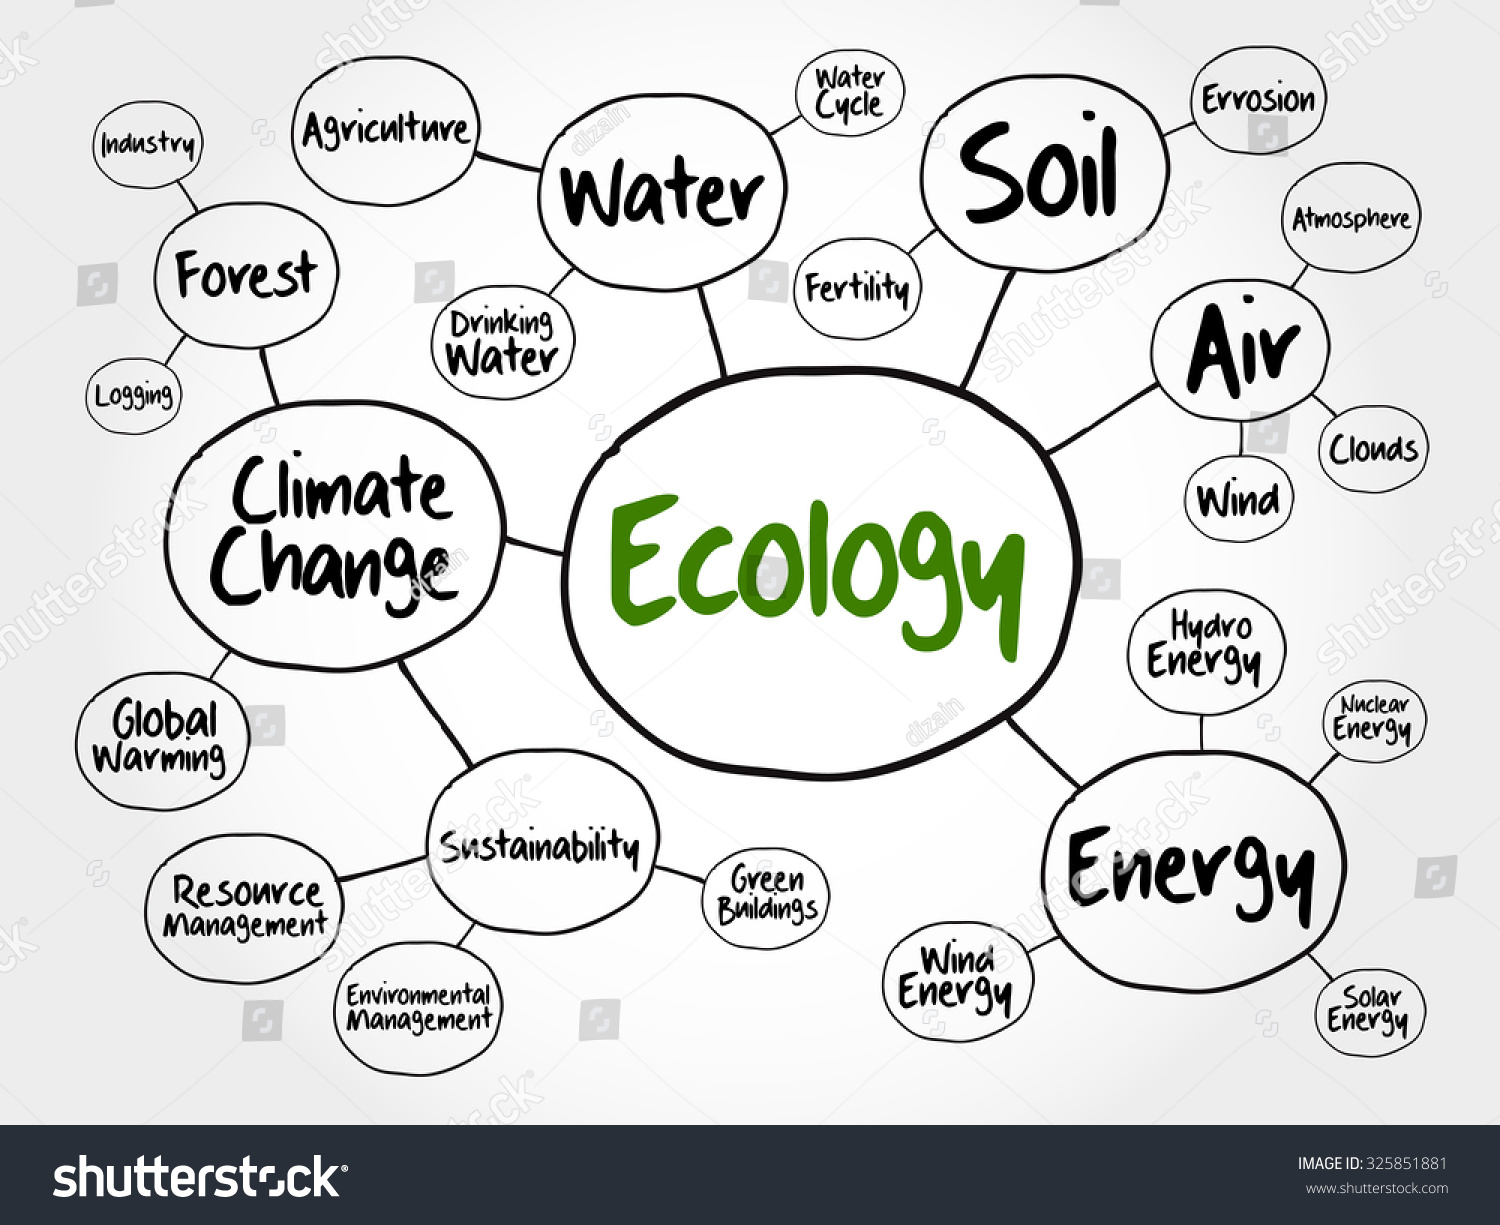 Ecology mind map flowchart concept presentations stock vector ecology mind map flowchart concept for presentations and reports nvjuhfo Images